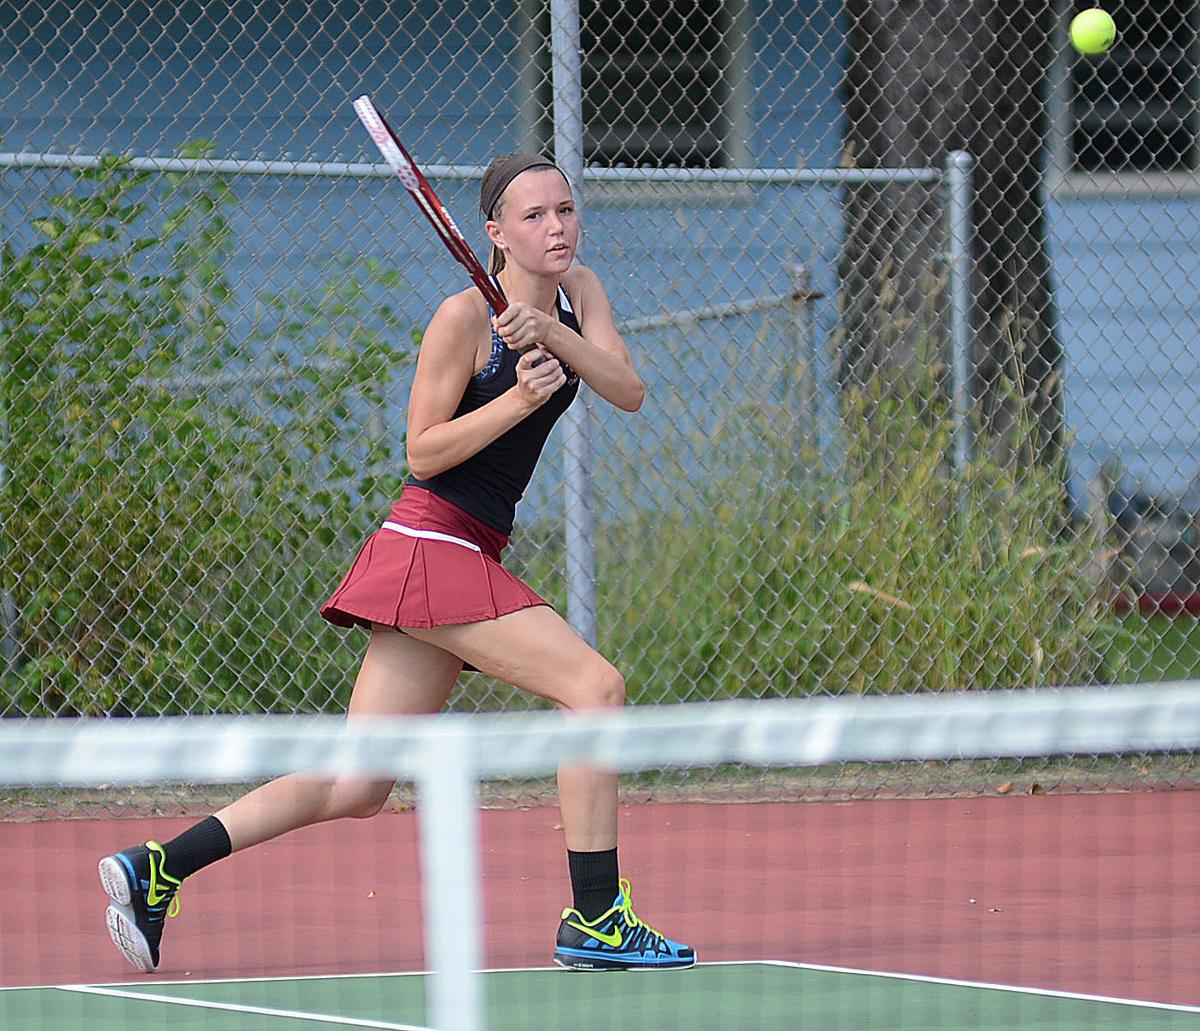 northfield falls girls Last season northfield converted on power plays 86 percent of the time and coming into this season head coach brent bielenberg wanted to see a higher percentage of success on.